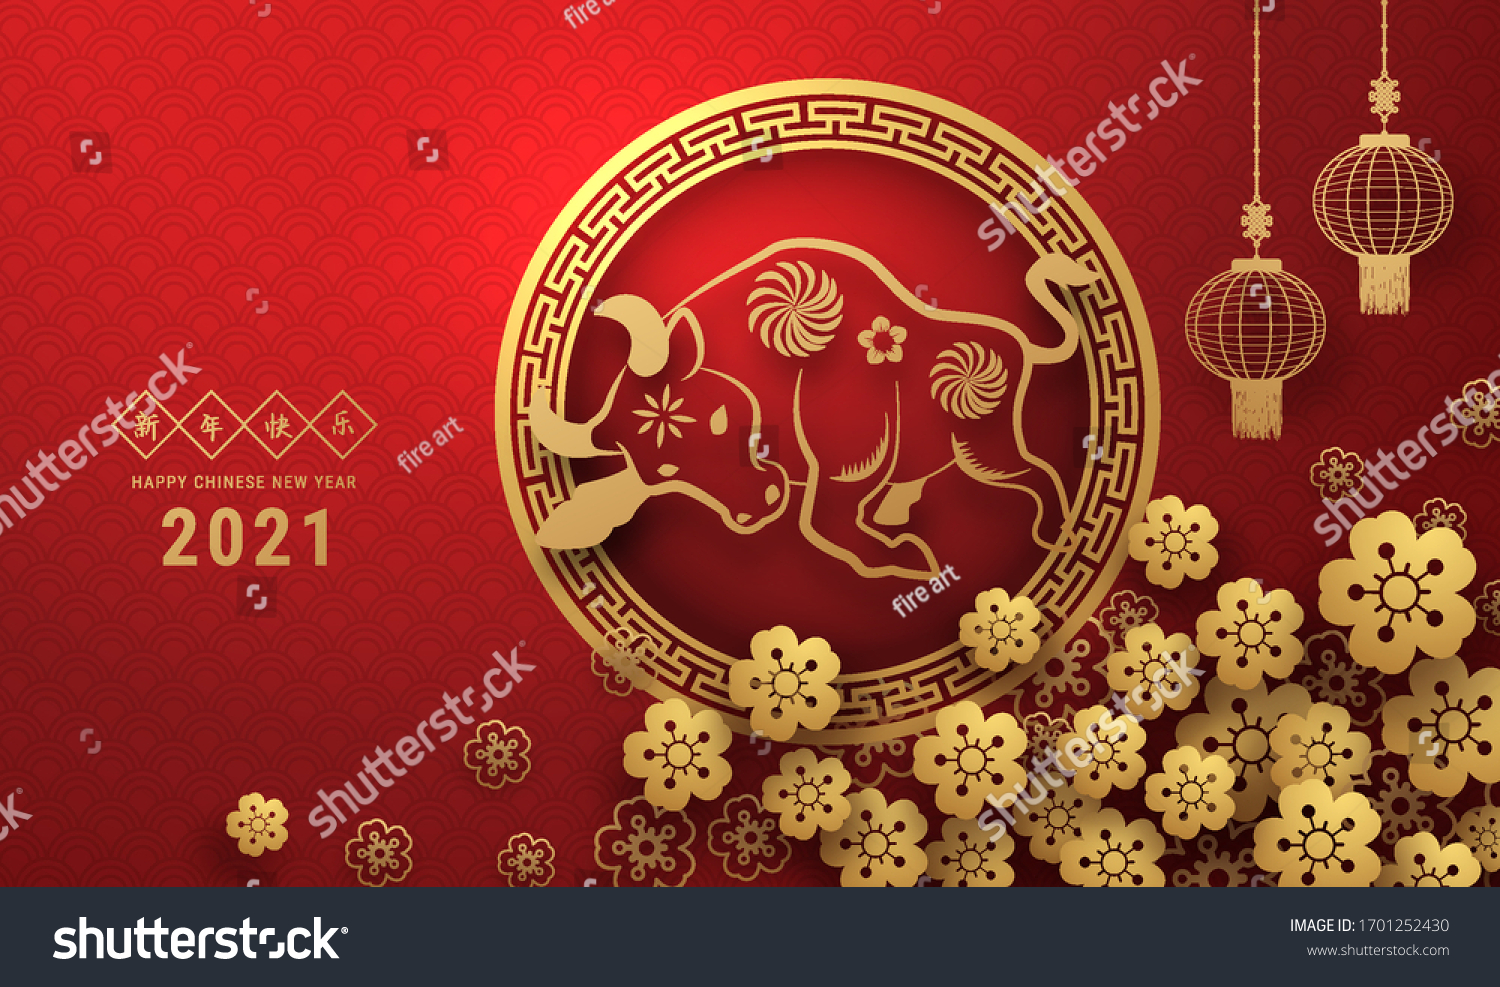 2021 Chinese New Year Greeting Card Stock Vector Royalty Free 1701252430